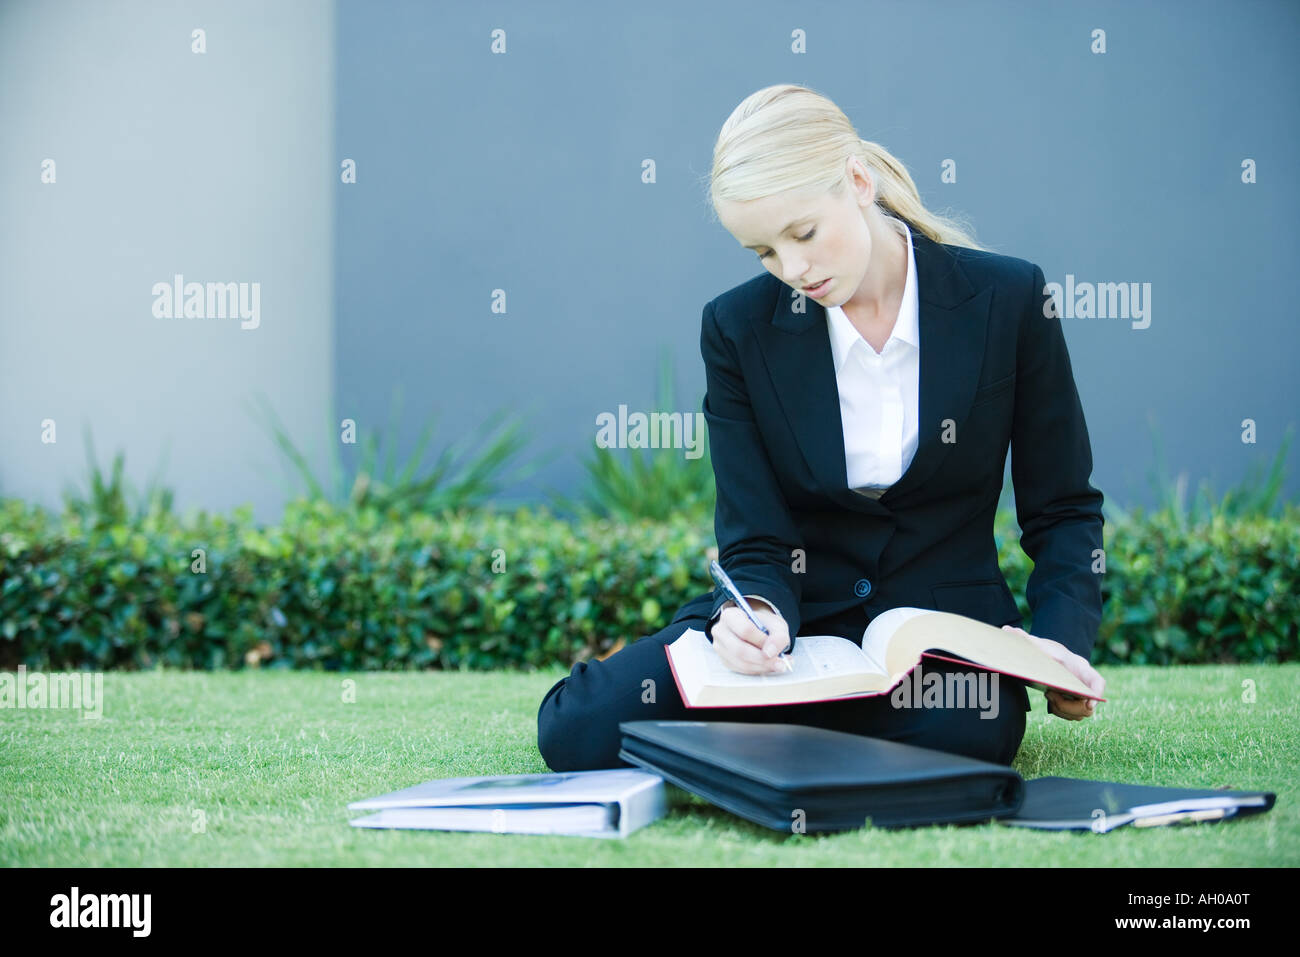 Young businesswoman sitting on the ground outdoors, reading book, holding pen - Stock Image